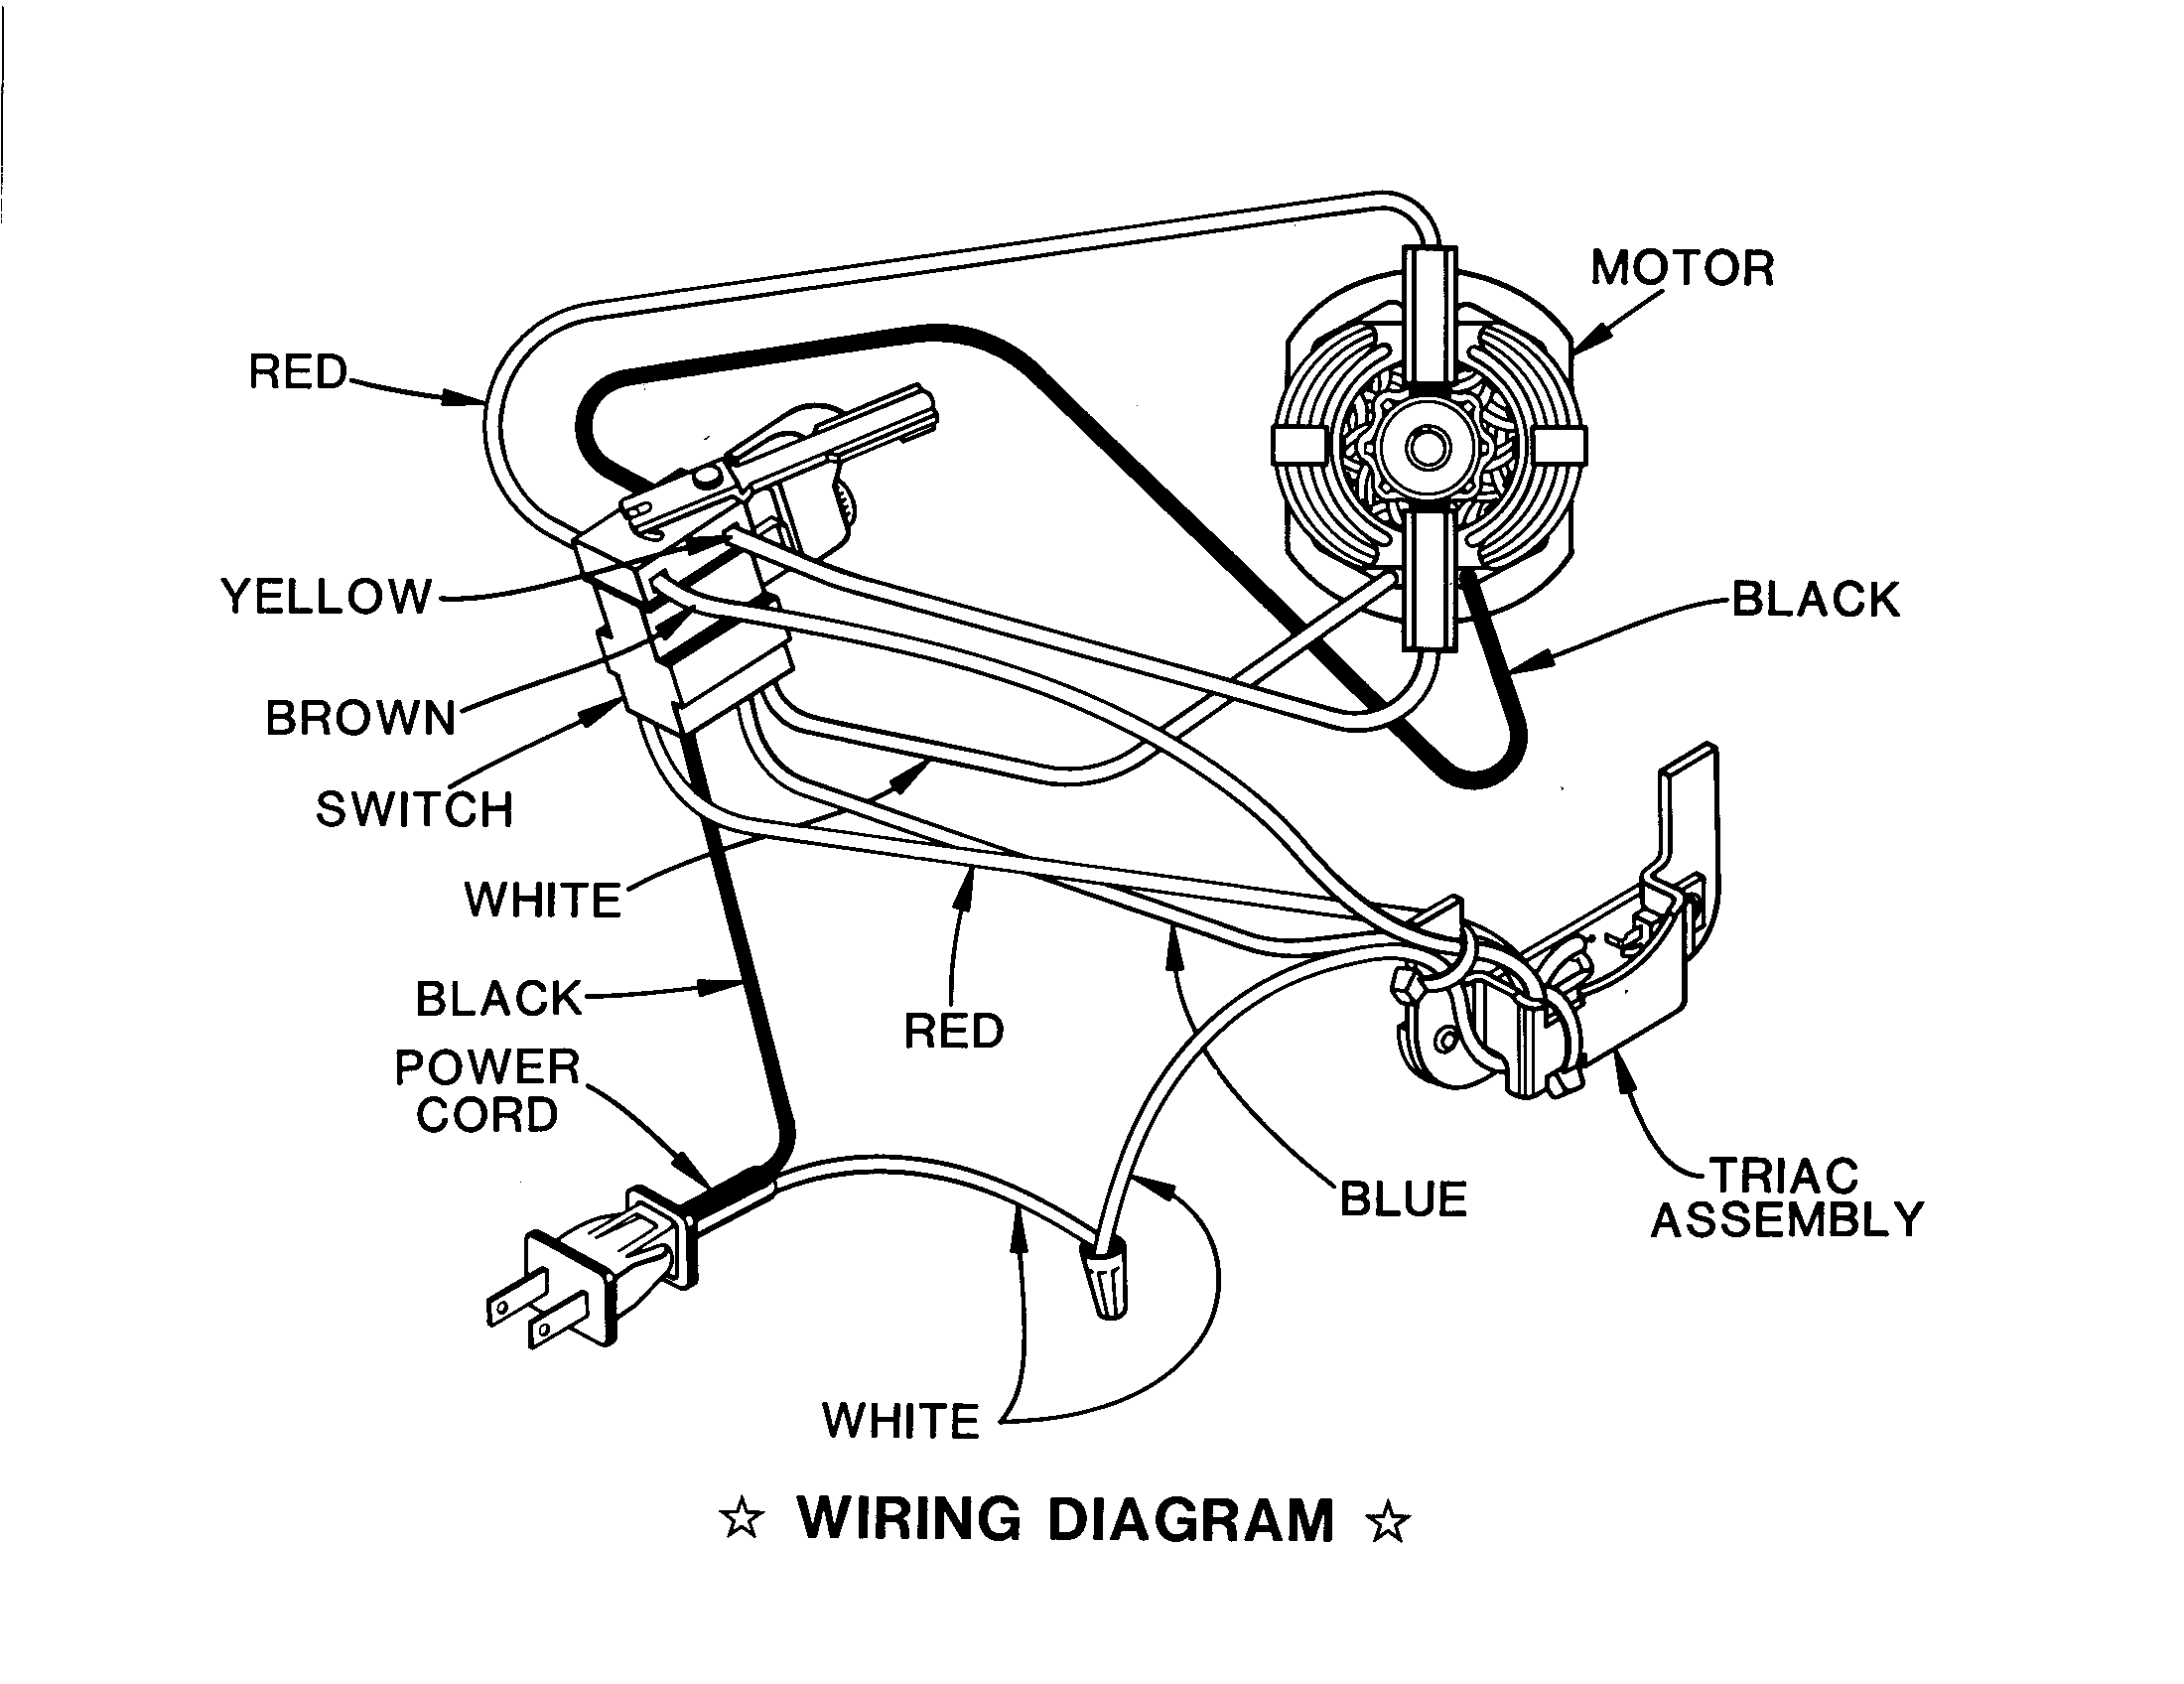 P0111051 00003?resize\\\=665%2C512 contura switch wiring diagram horn wiring diagrams carling contura lr39145 wiring diagram at bakdesigns.co